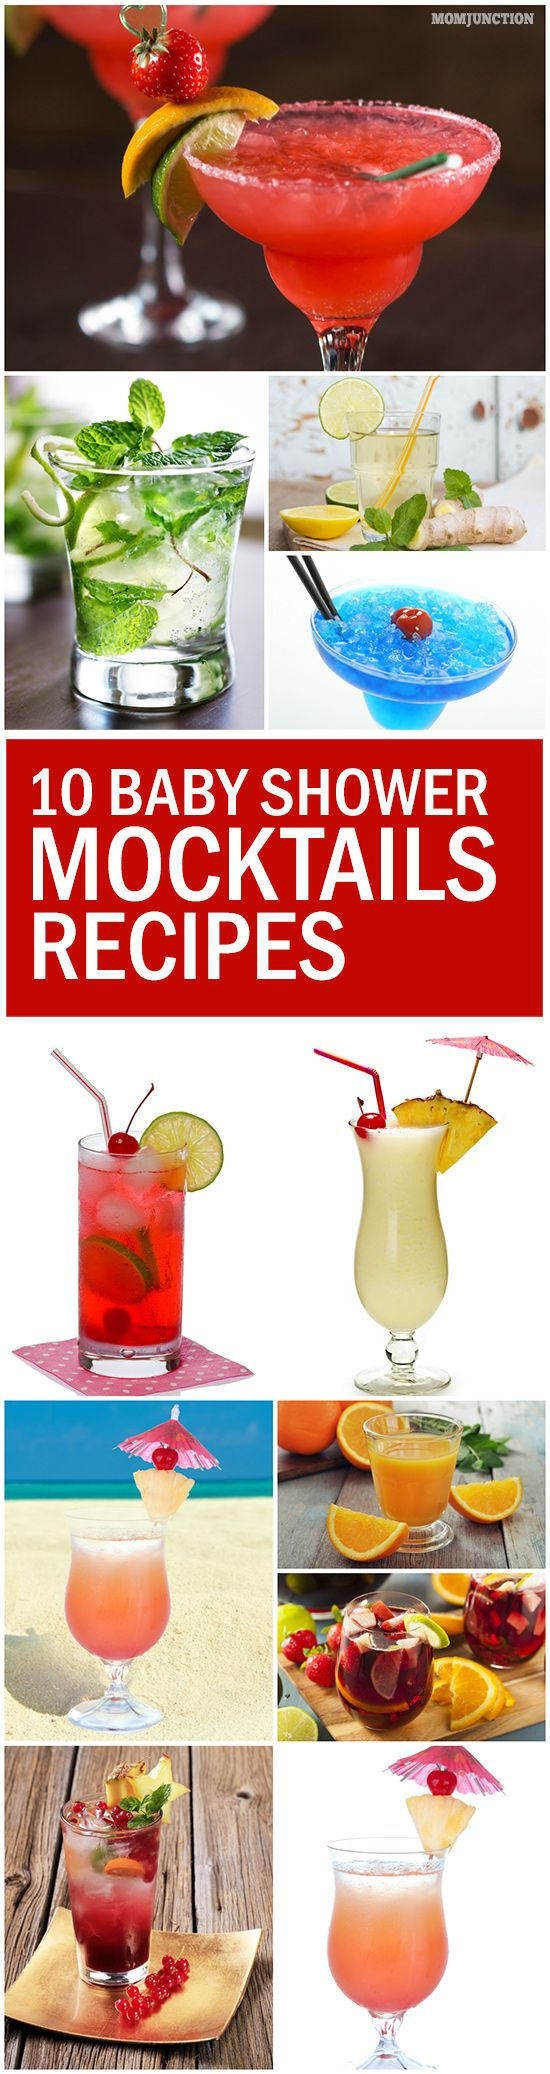 30 Fun Baby Shower Mocktails Recipes To Kickstart Your Party